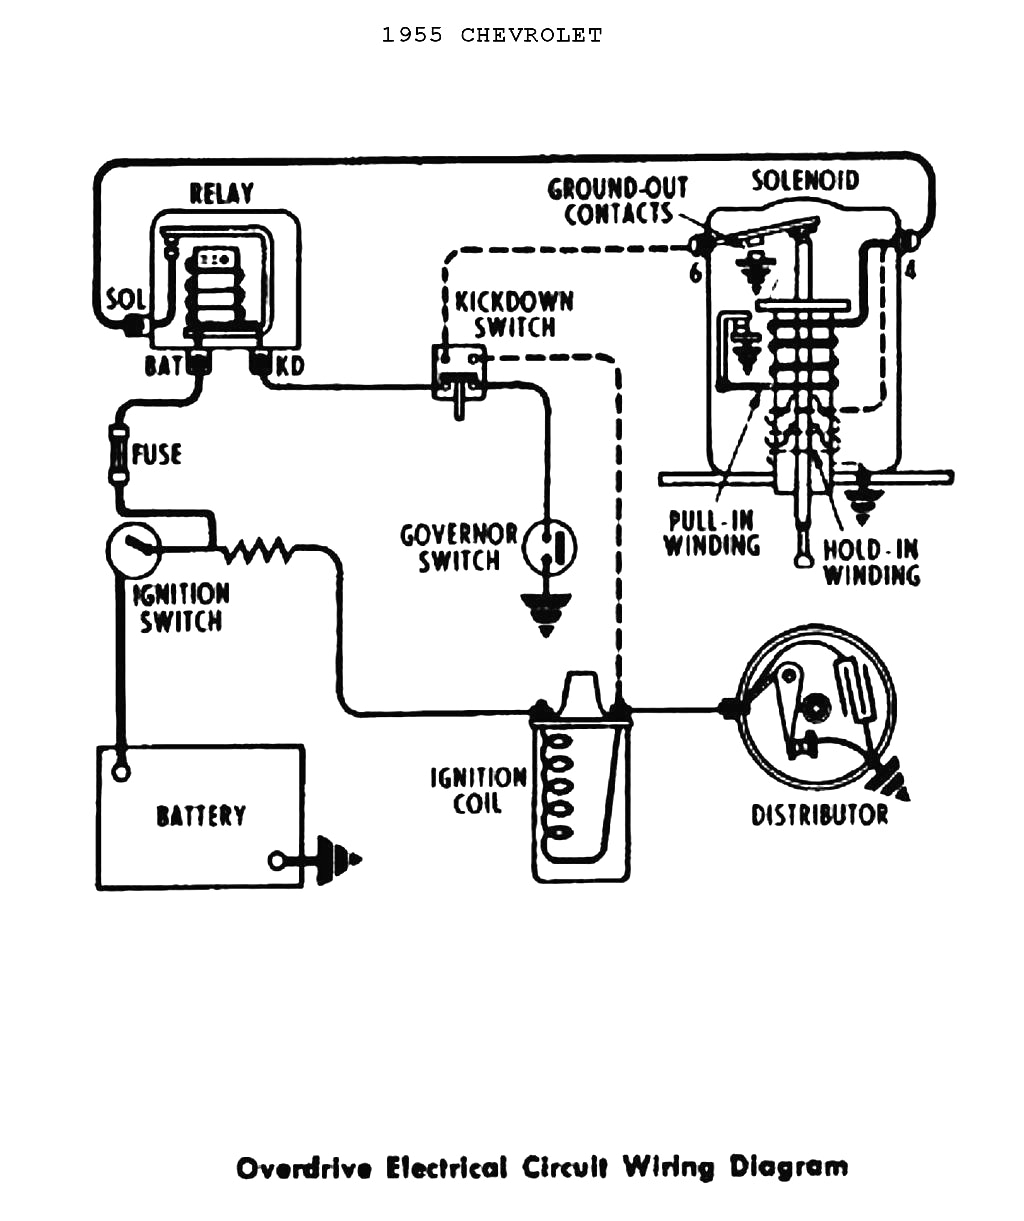 spark plug wire diagram for a chevy 350